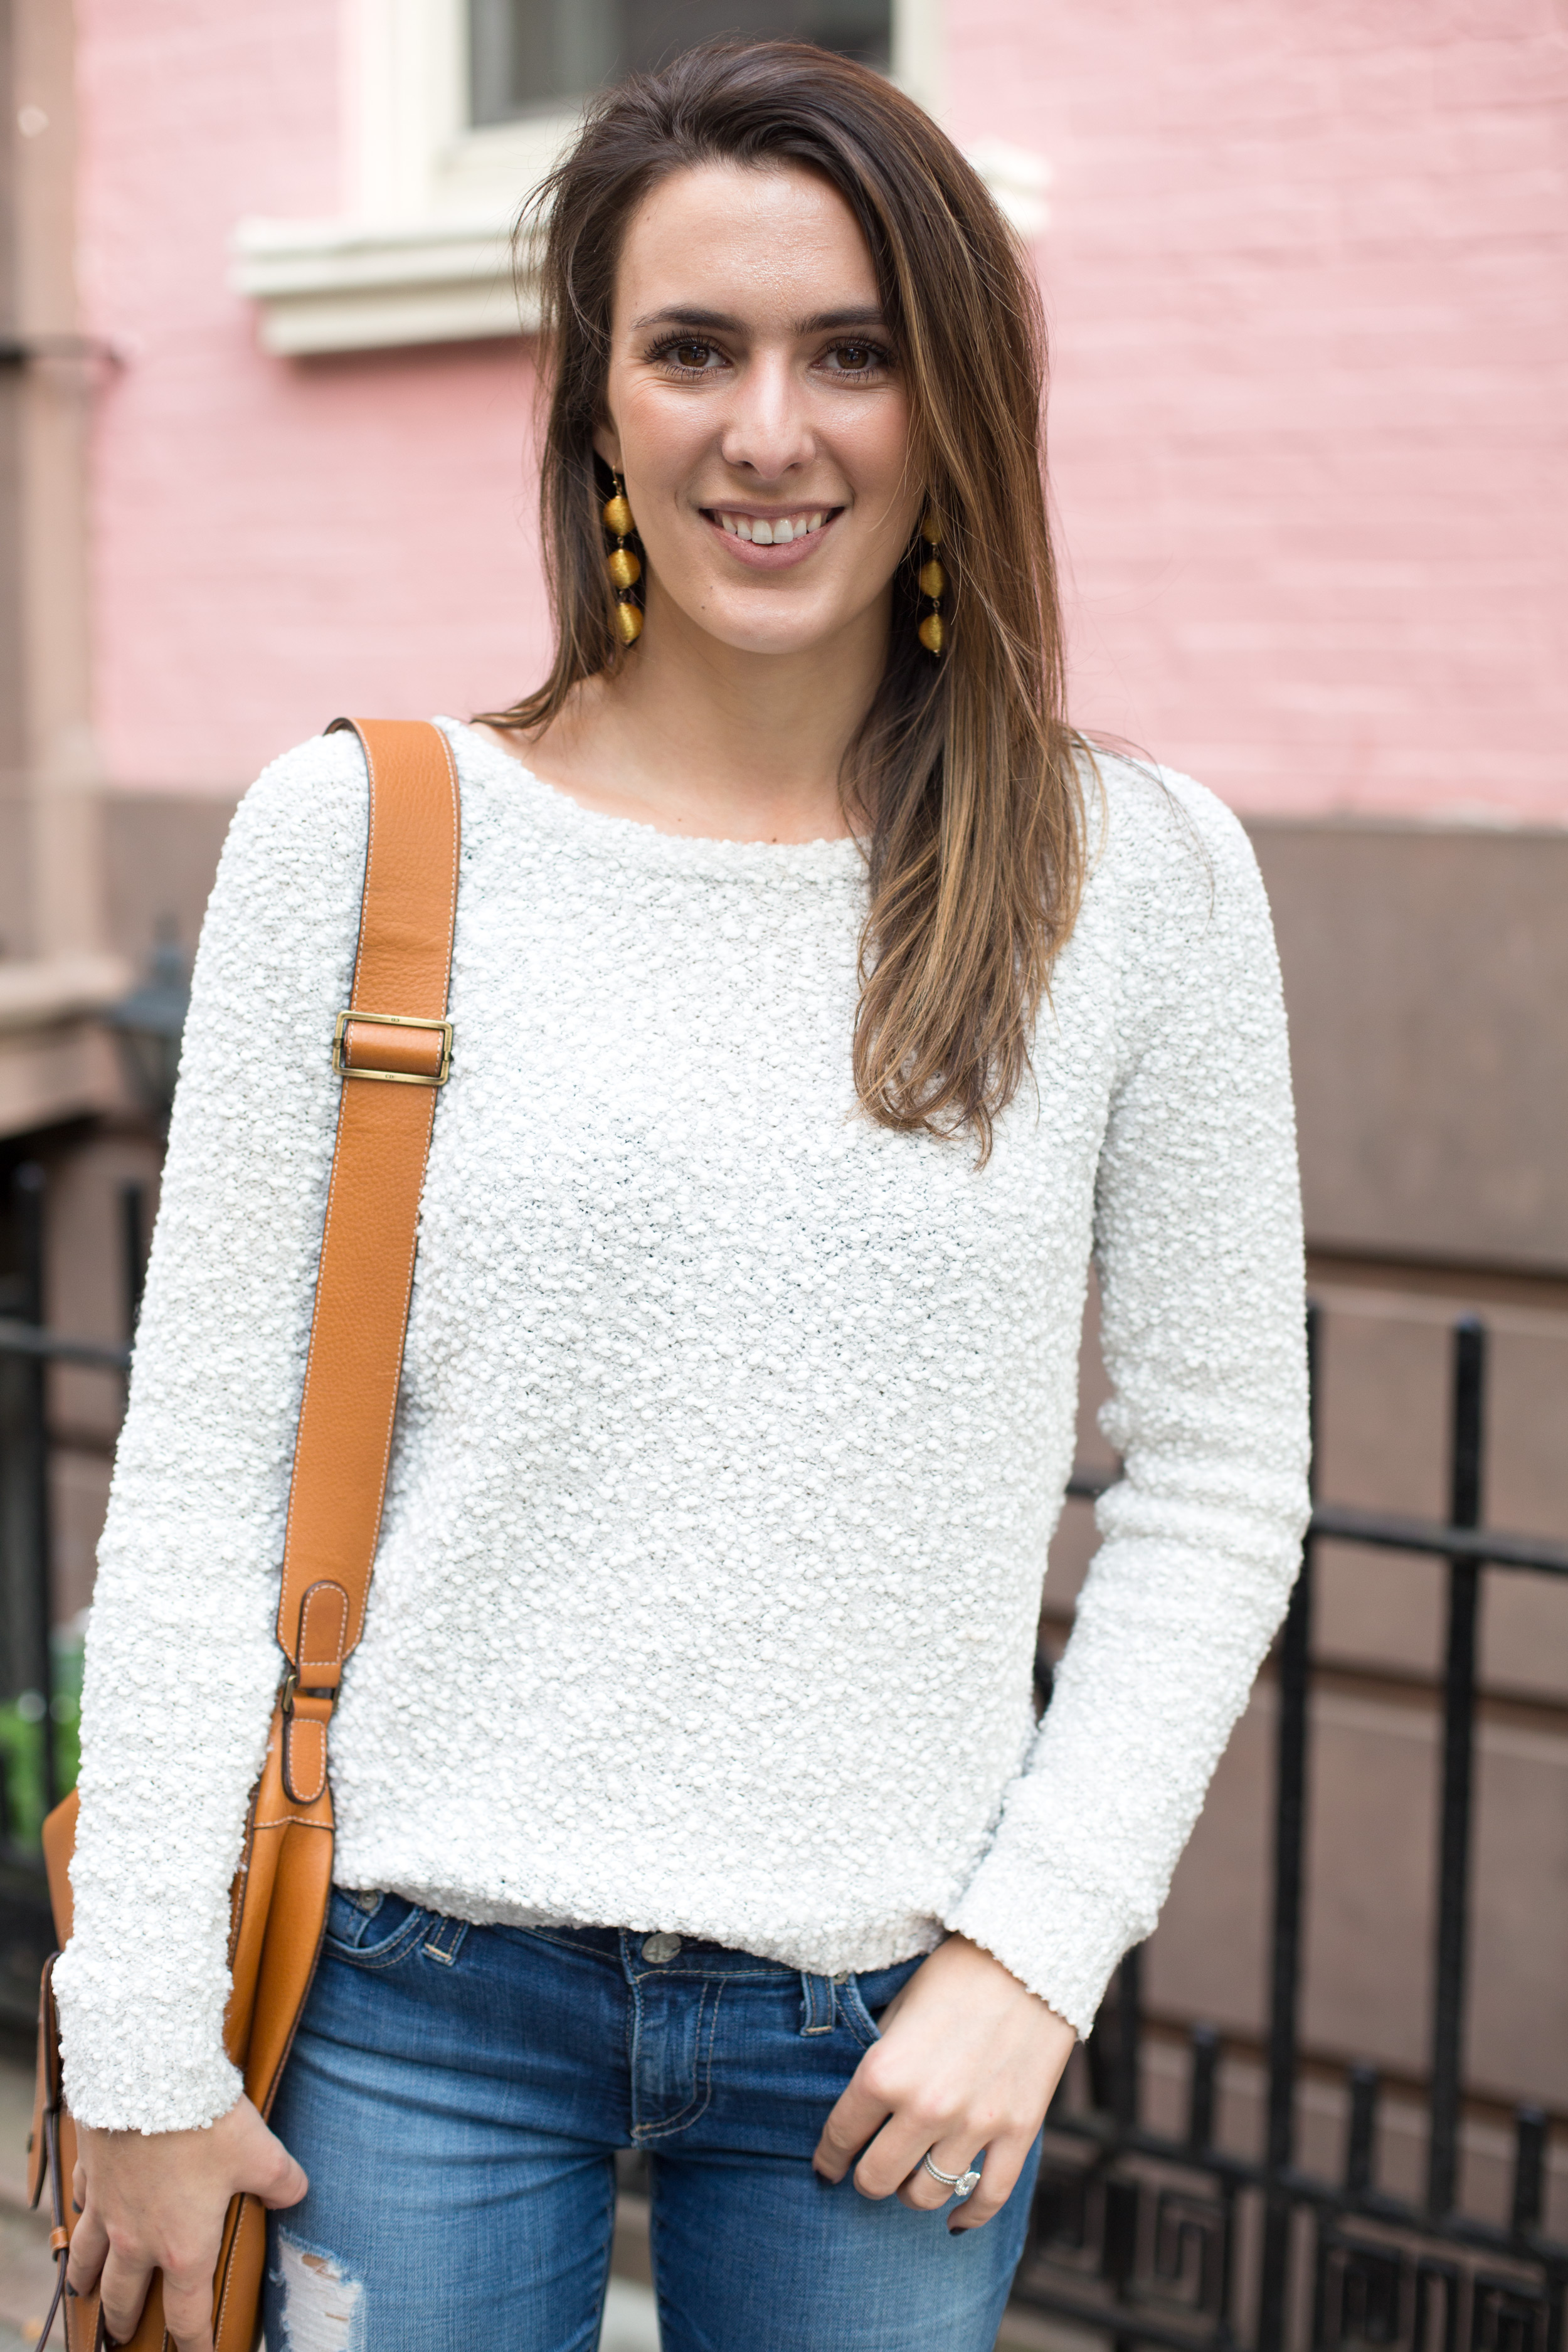 Style Blogger and Photographer Samantha Metell wearing a cozy weekend sweater by Lilla P